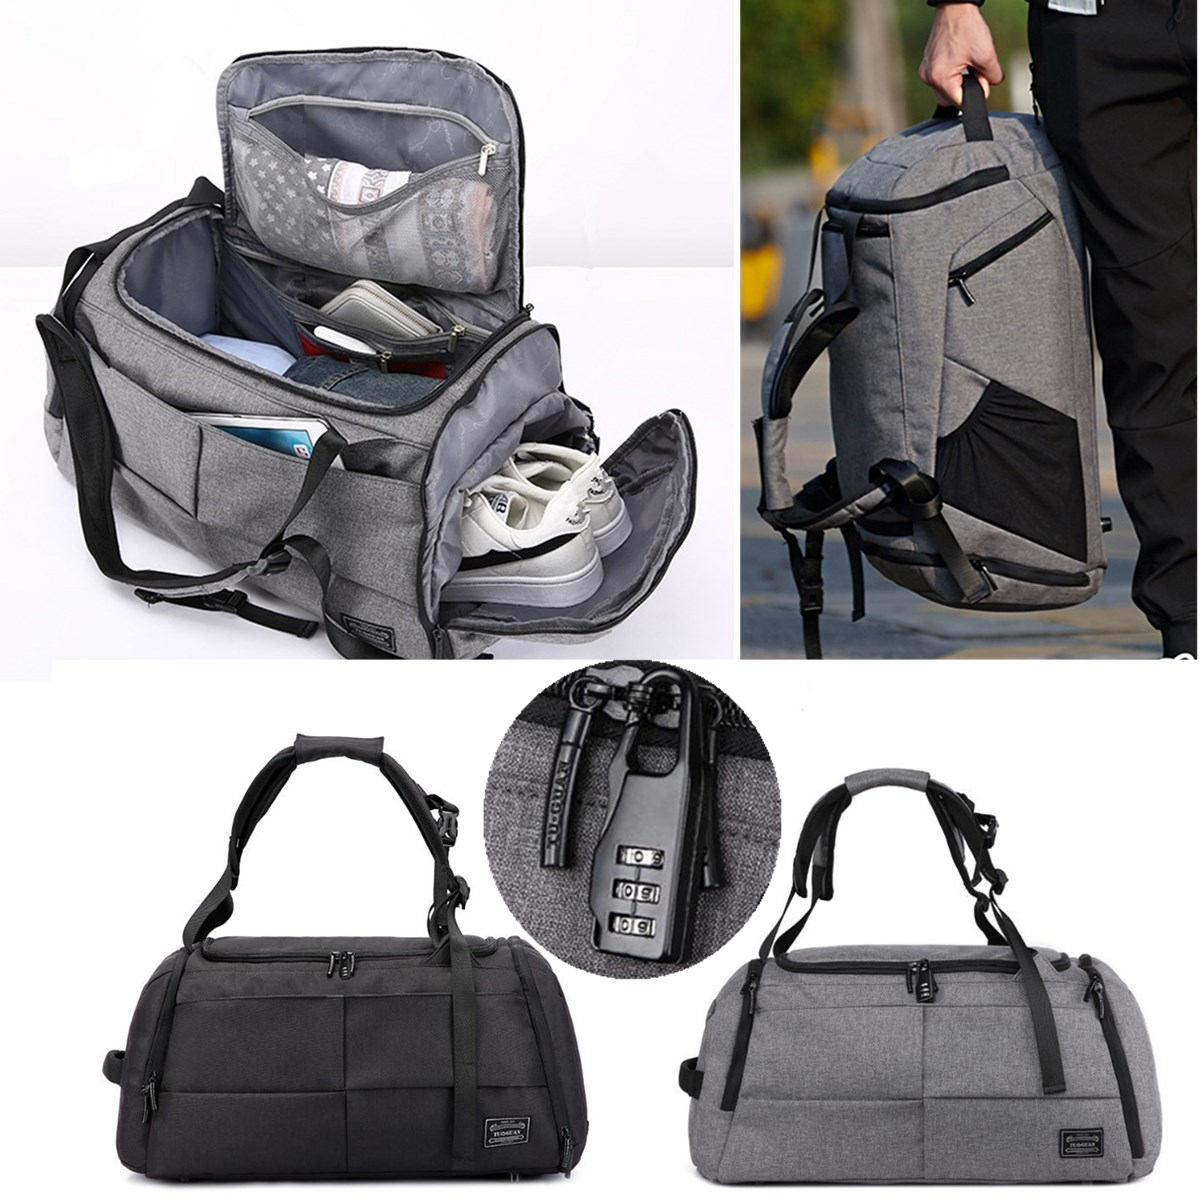 Multifunctional Men Women Luggage Travel Bag Large Capacity Duffle Bag Satchel Shoulder Gym Sports Handbag with